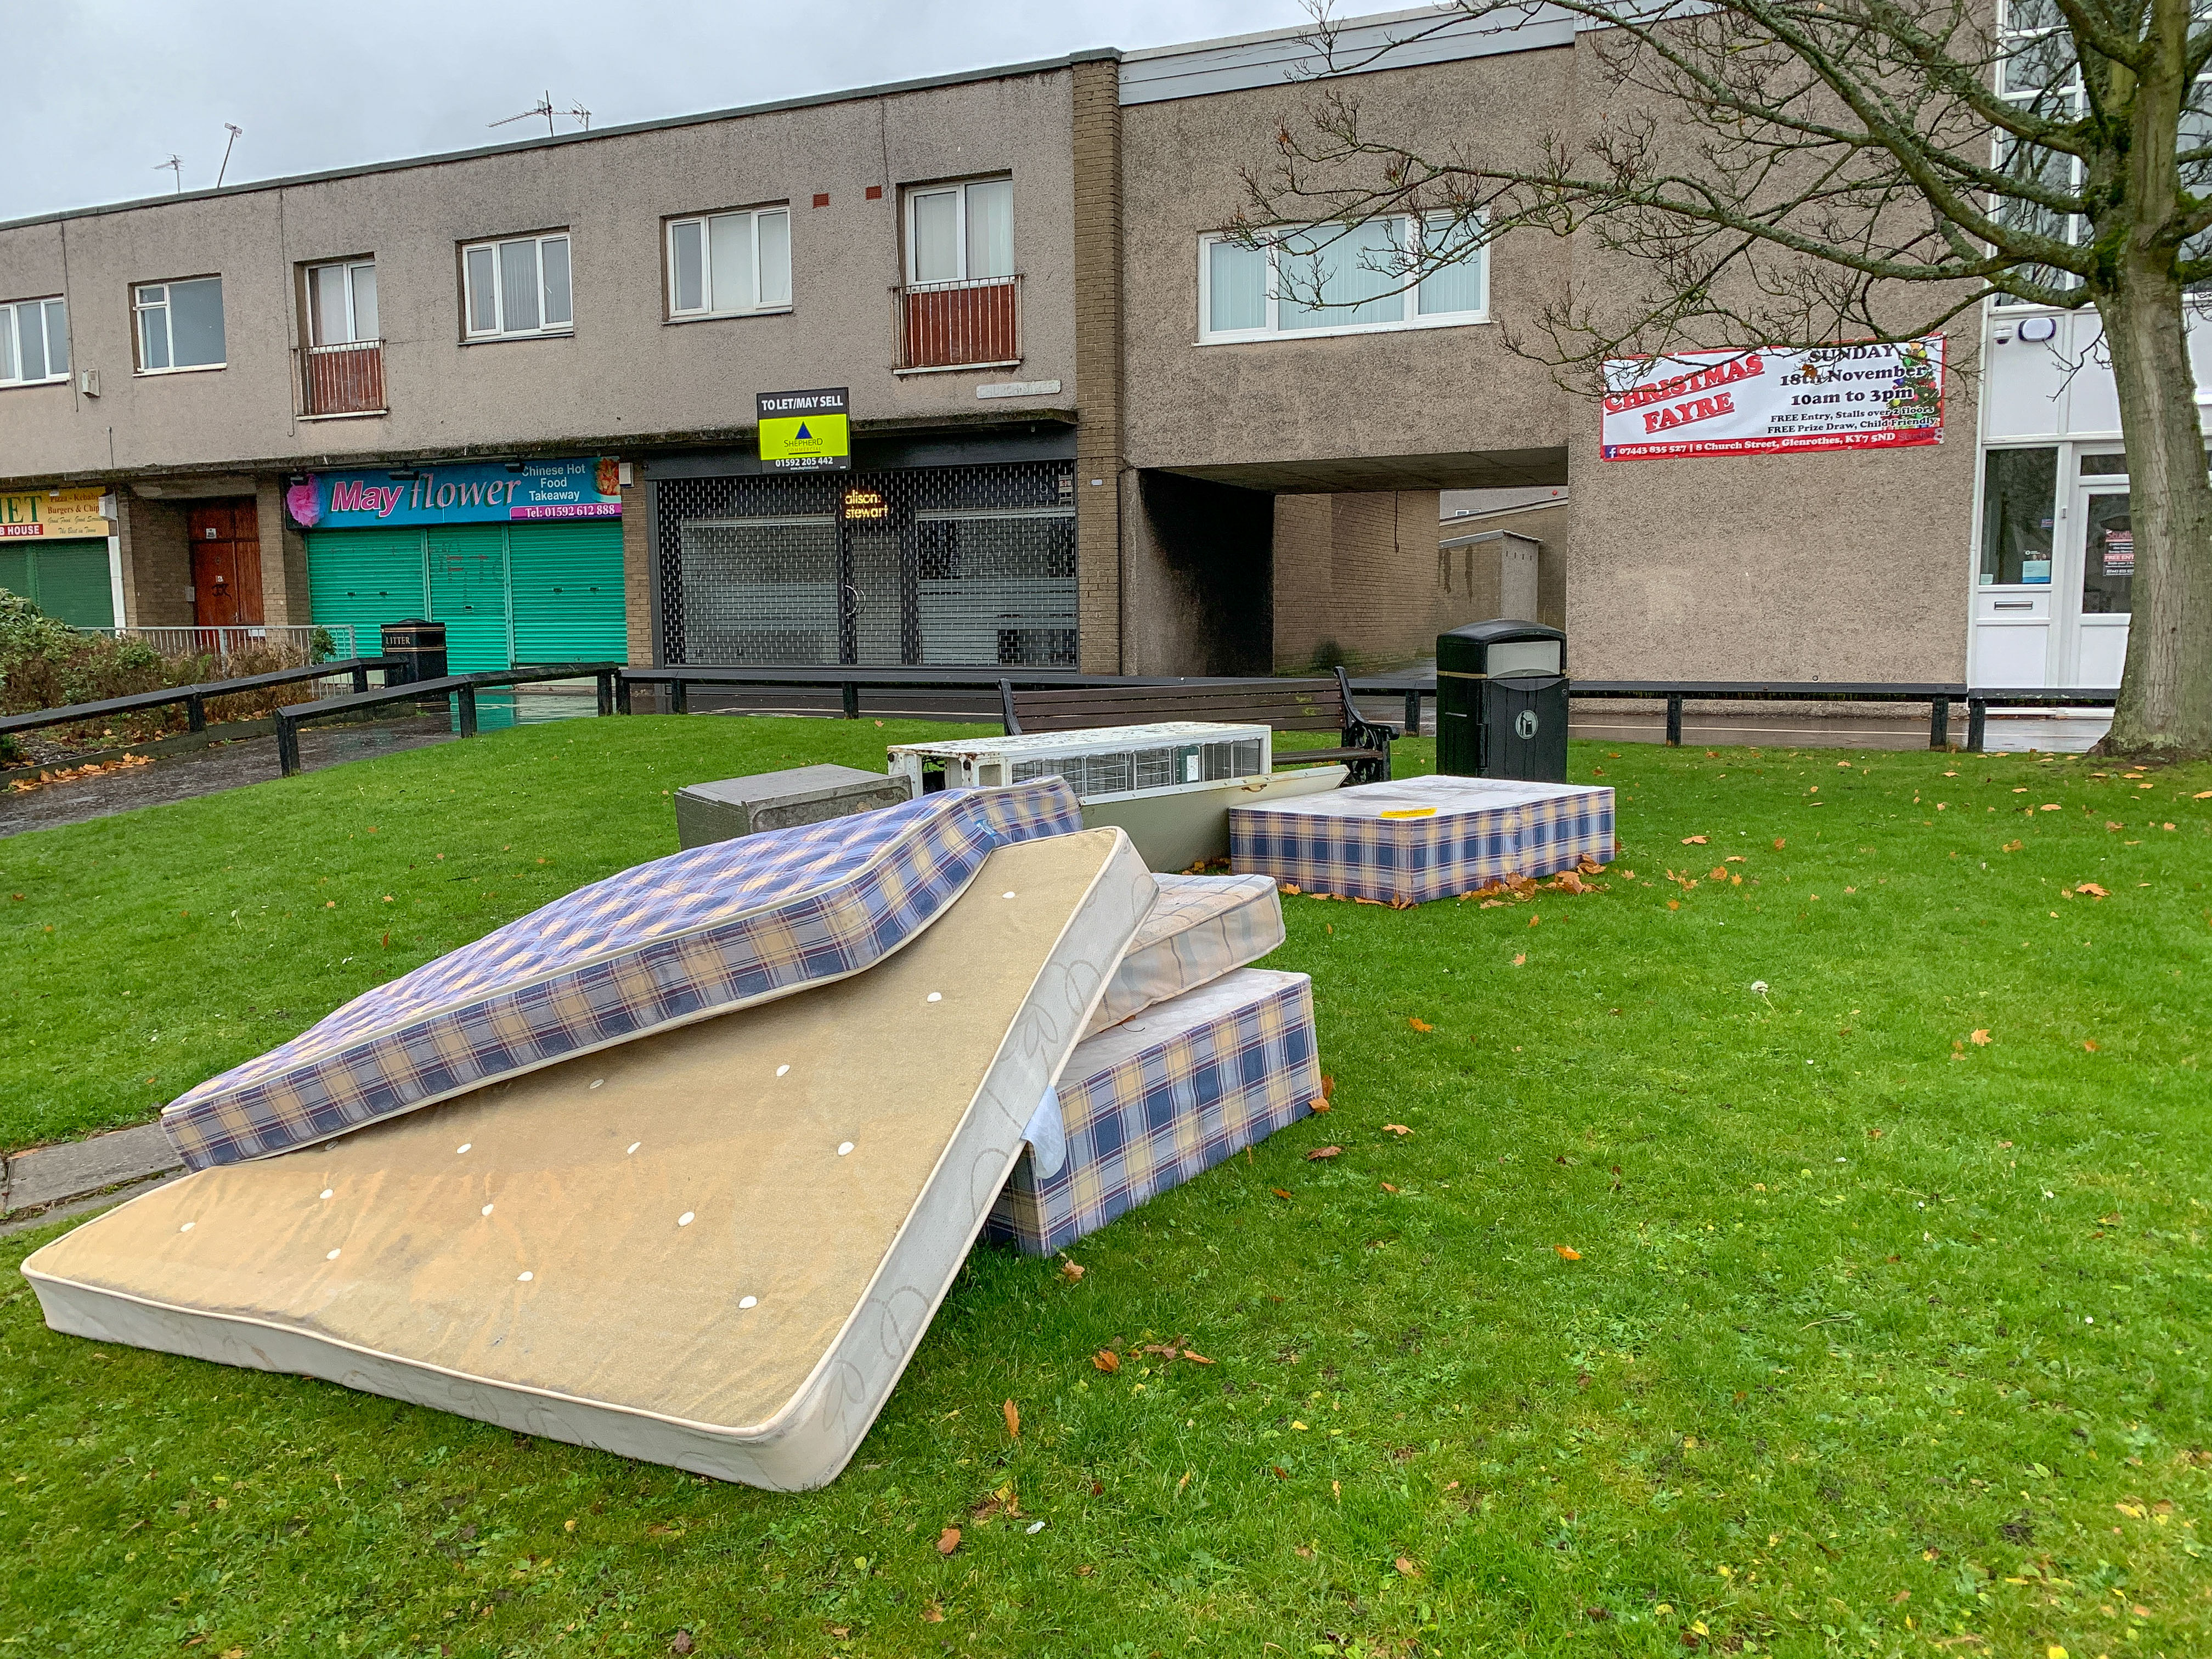 The 'fly-tipped' items that were missed by Fife Council